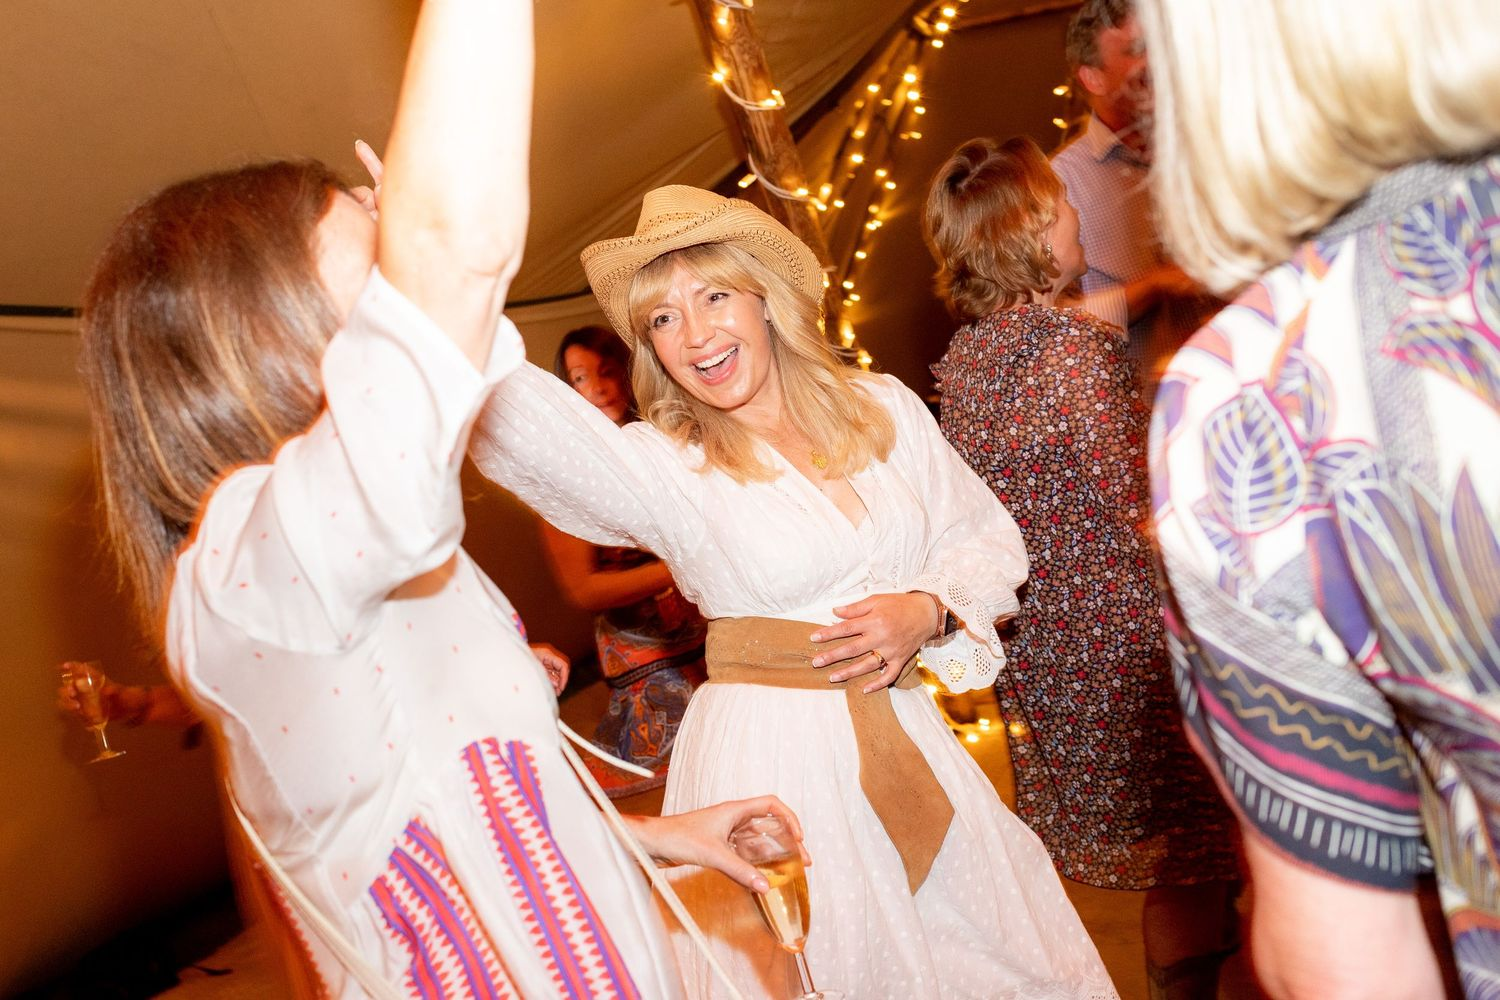 A woman wearing a white dress and cowboy hat dances in a teepee at a party - Party photography